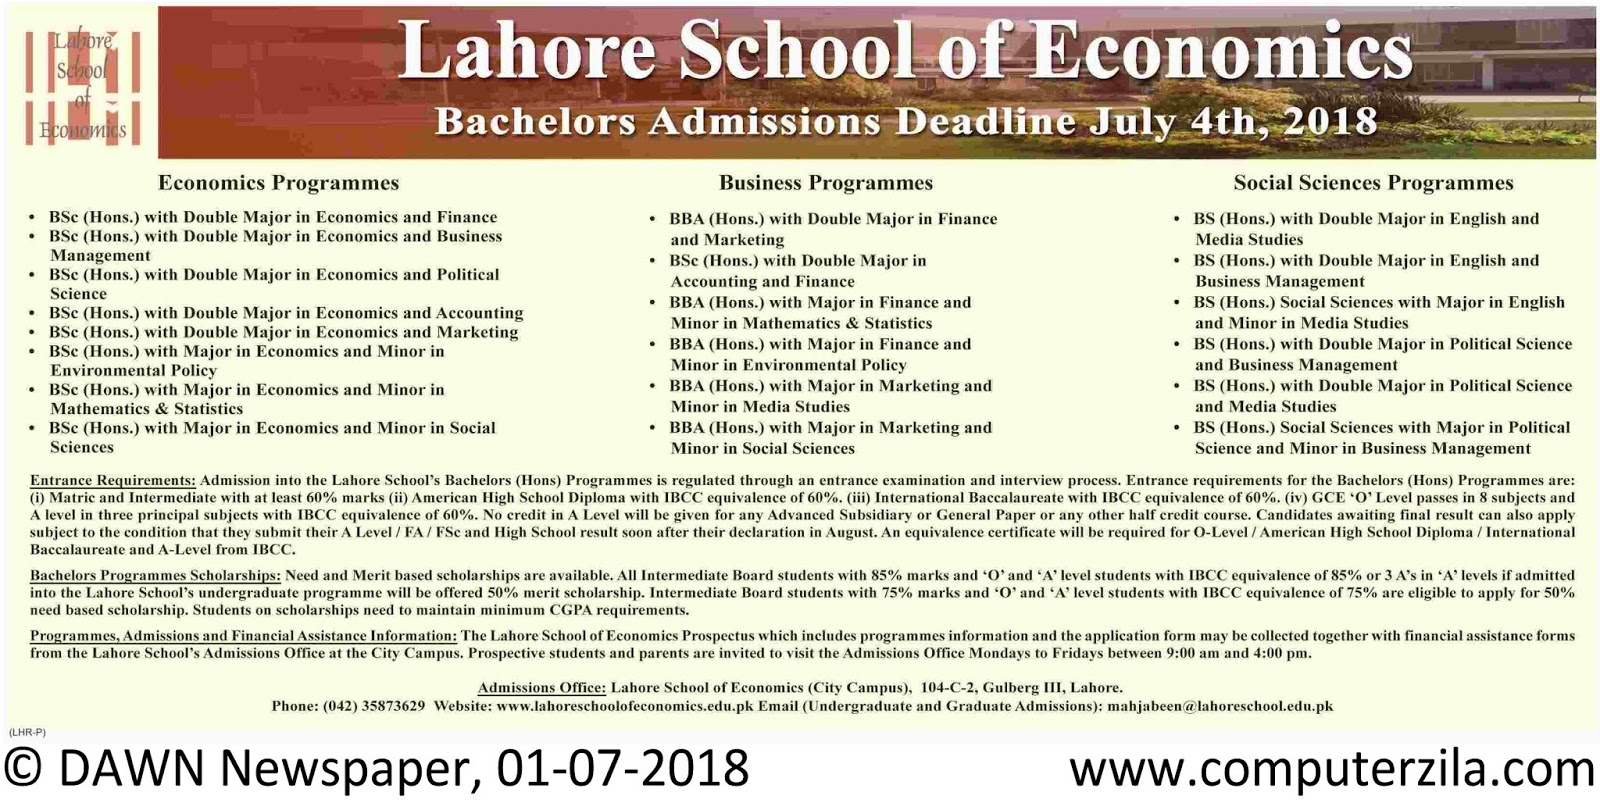 Lahore School of Economics Admissions Fall 2018